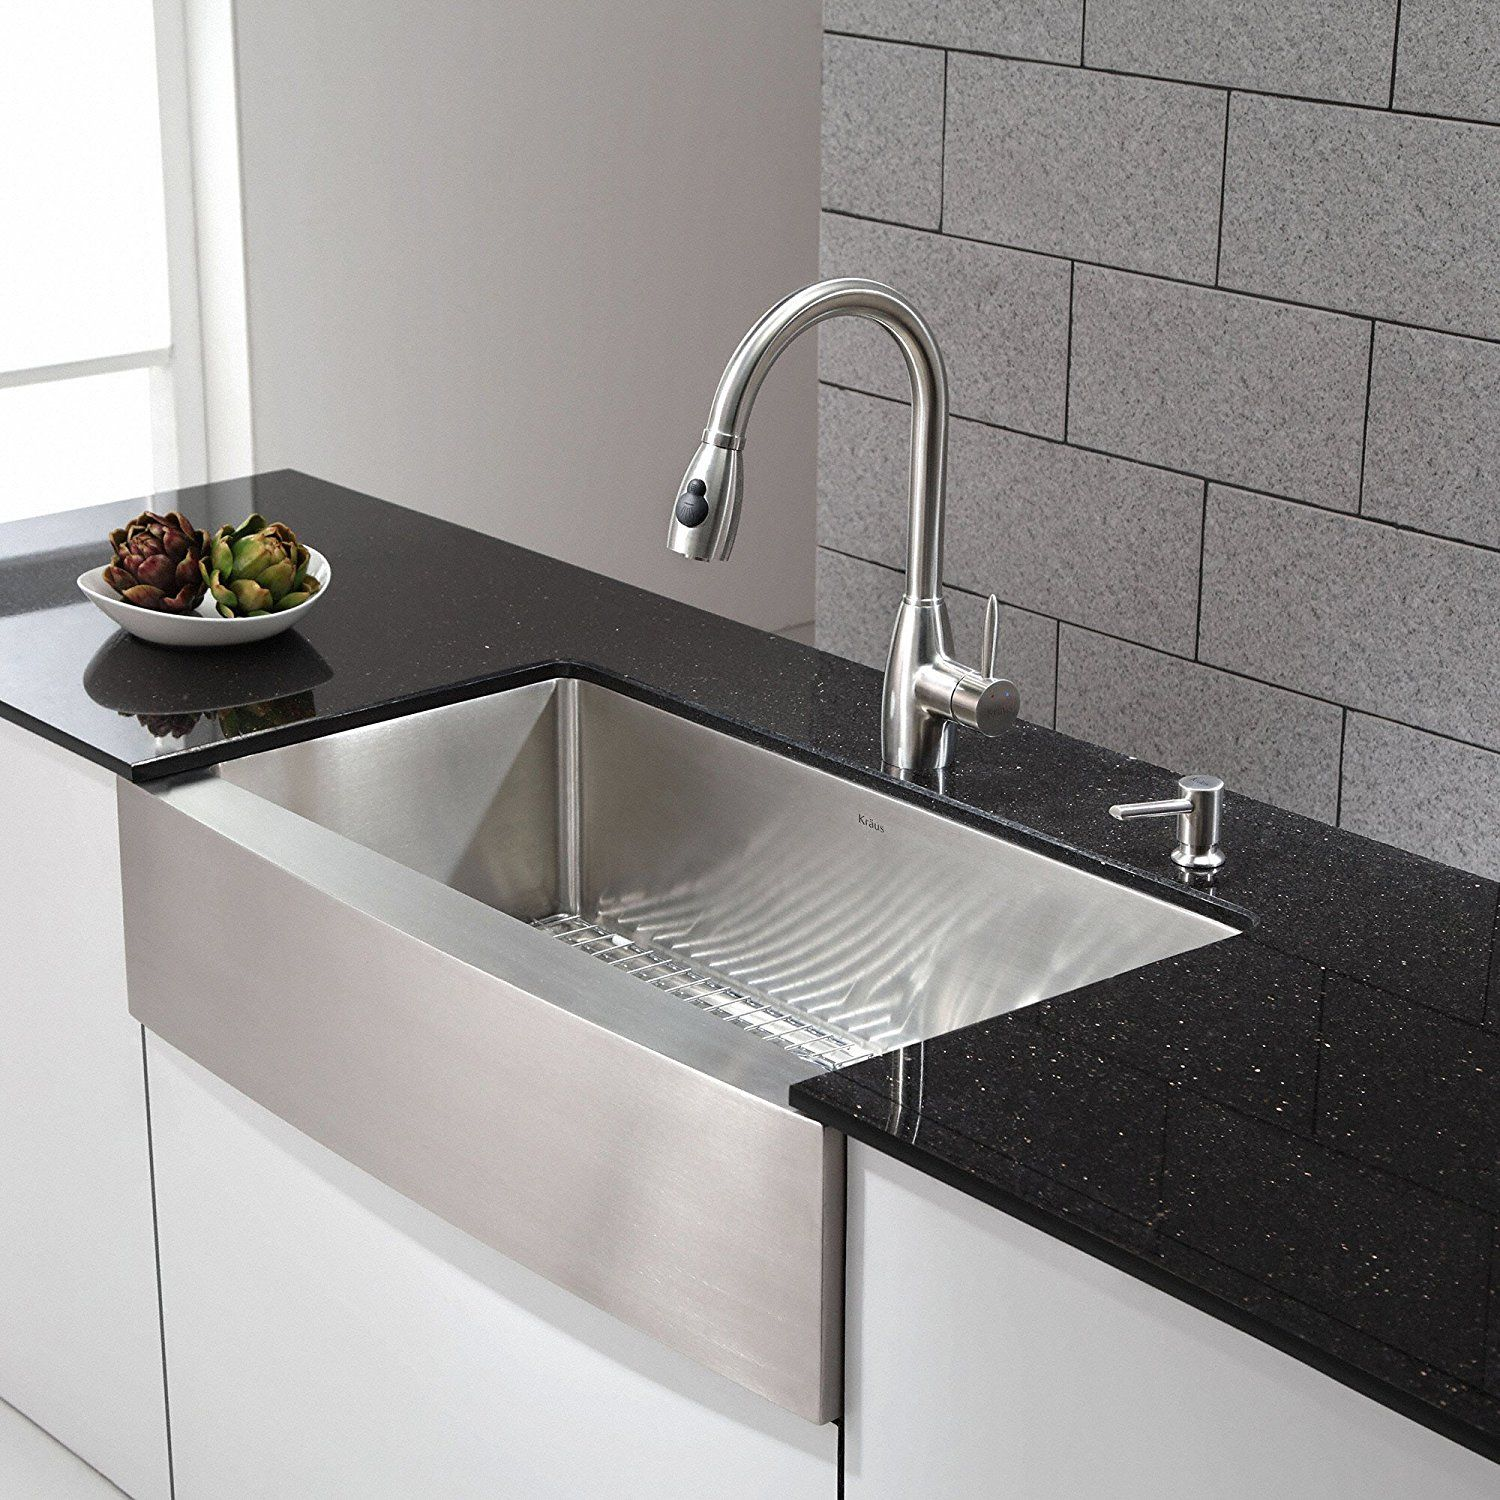 Kraus Khf200 36 Inch Farmhouse A Single Bowl 16 Gauge Stainless Steel Kitchen Sink Front With Drain